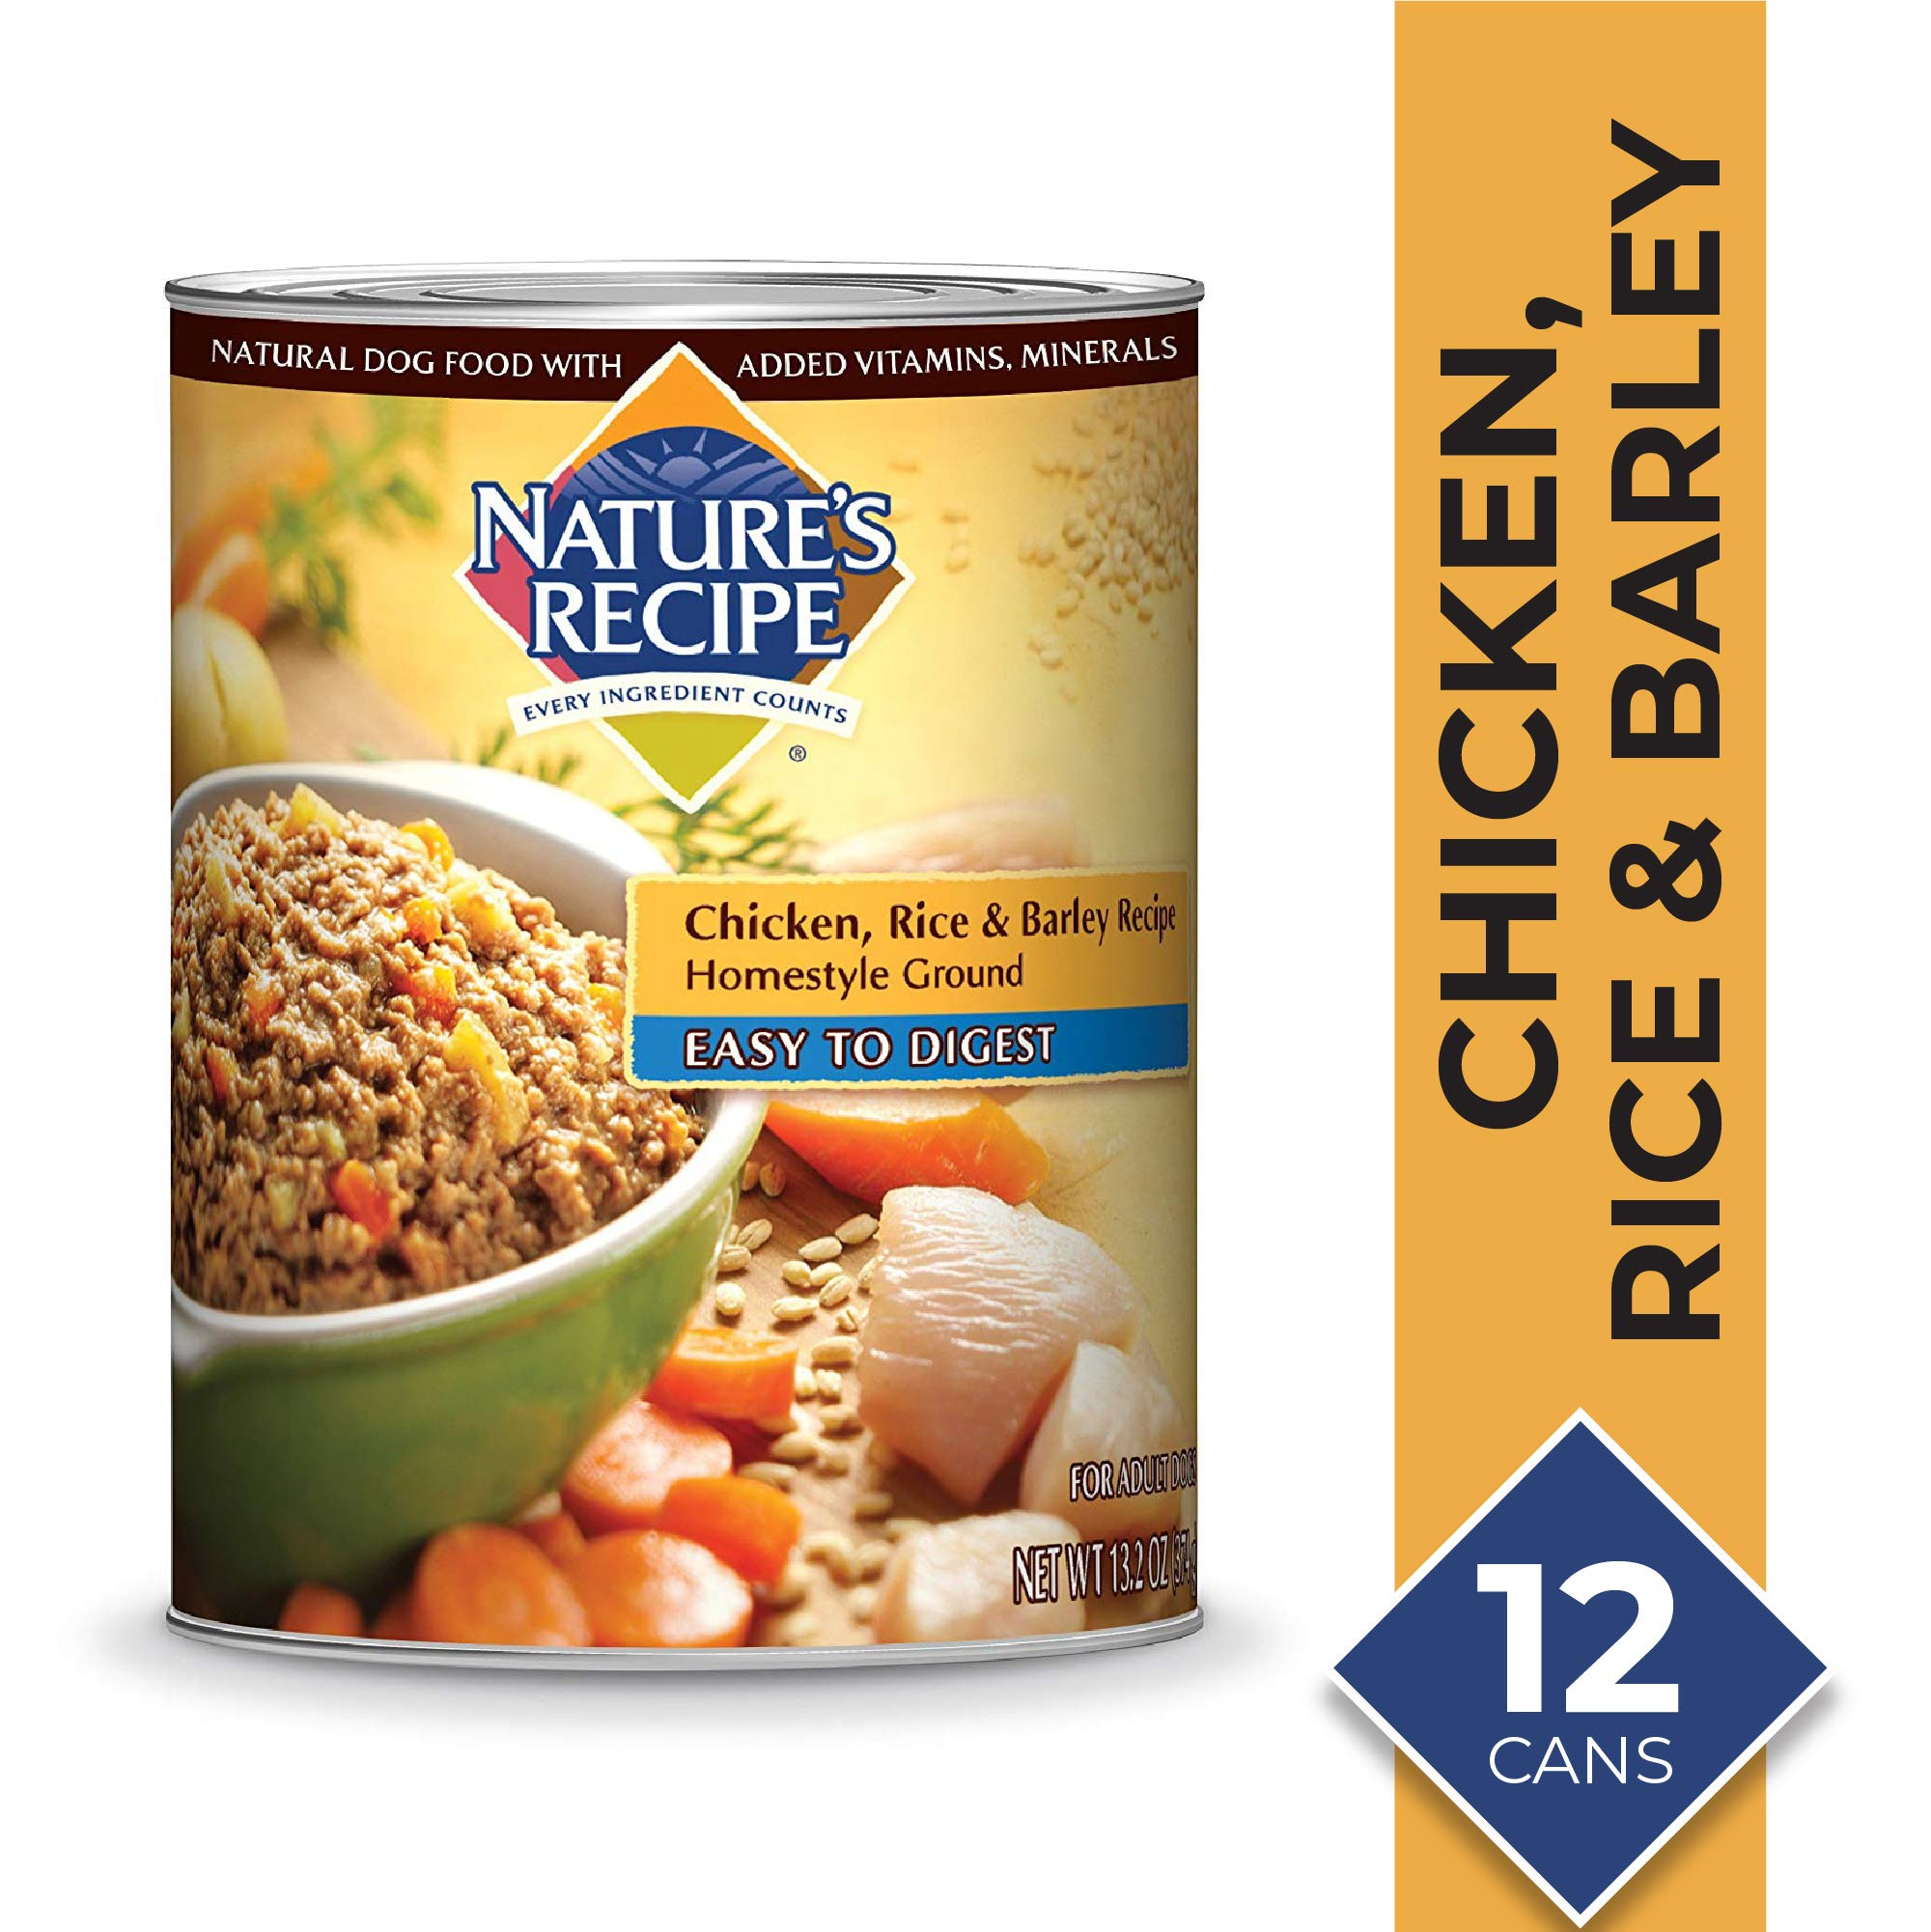 Nature's Recipe Chicken, Rice & Barley Recipe Wet Dog Food, 13.2 Ounces (Pack of 12), Easy to Digest Homestyle Ground by Nature's Recipe